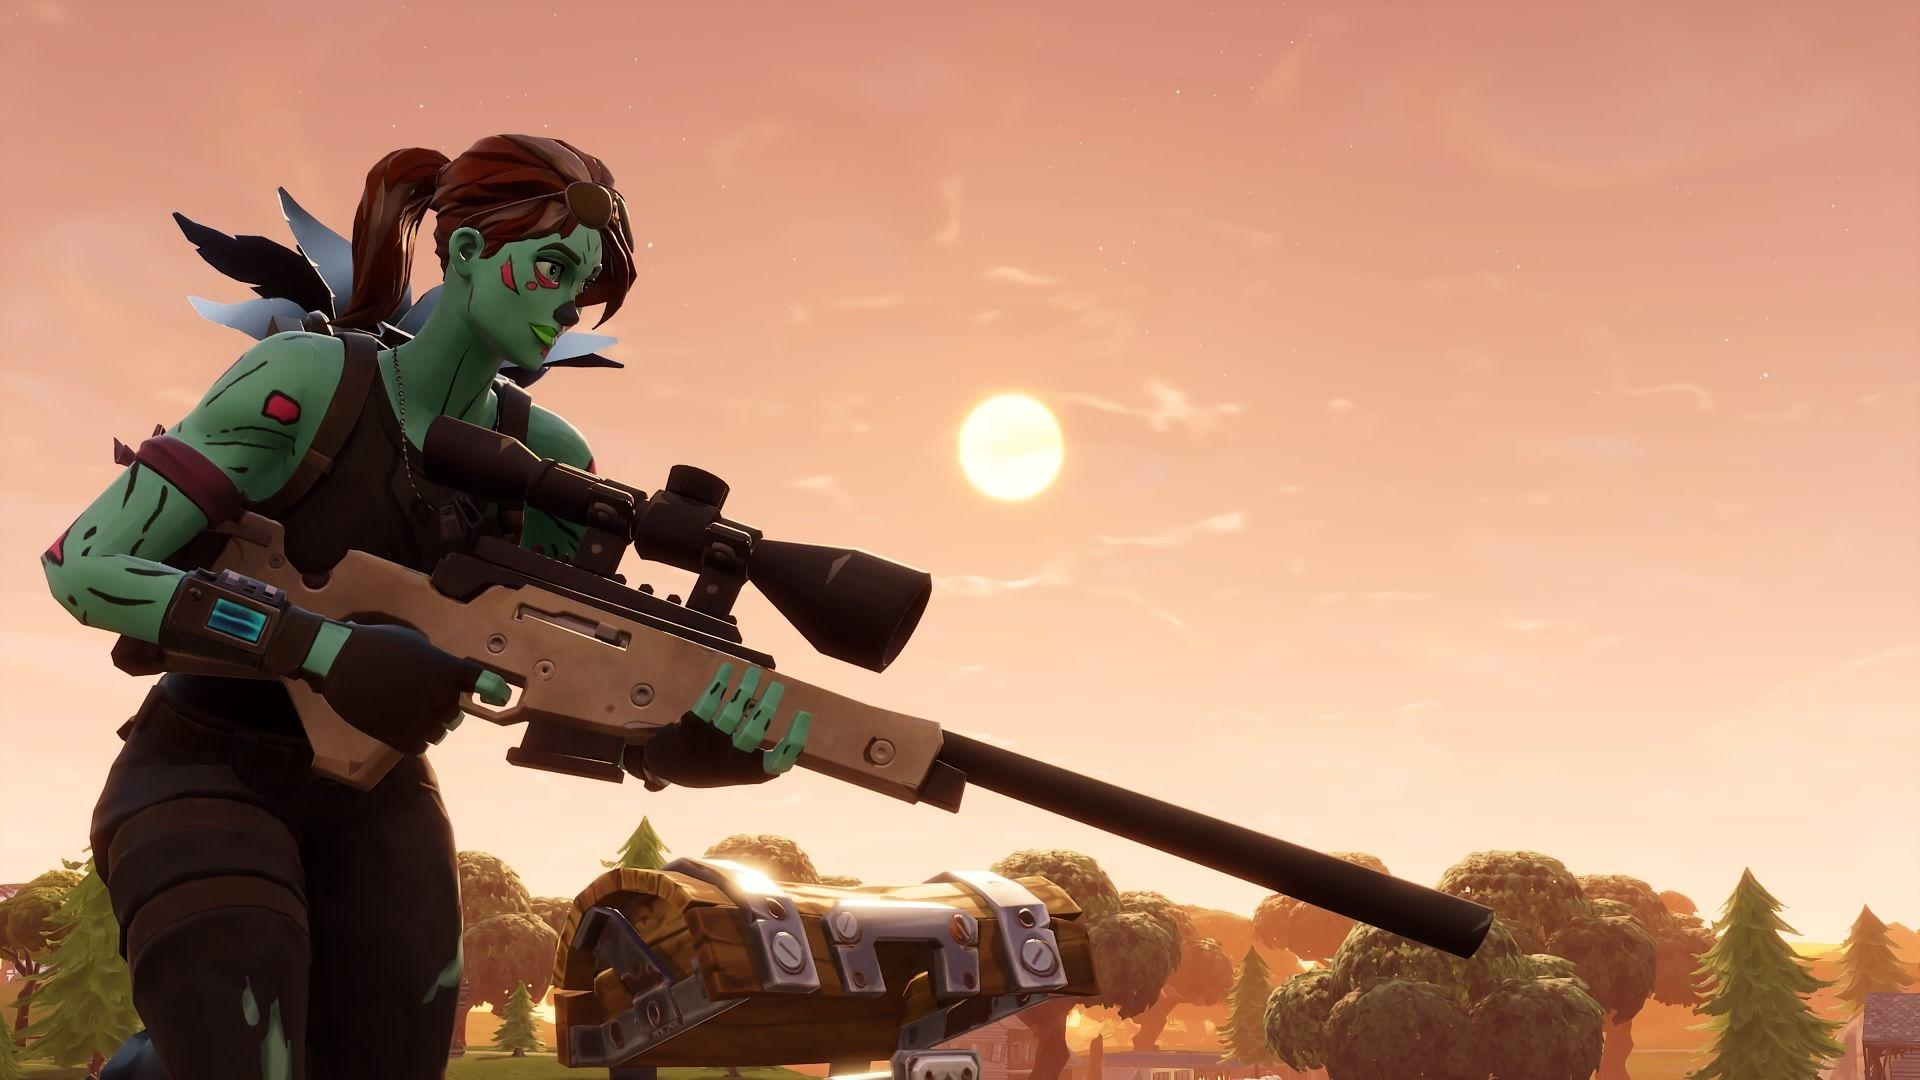 1920x1080 HD Wallpapers of Ghoul Trooper Fortnite Battle Royale